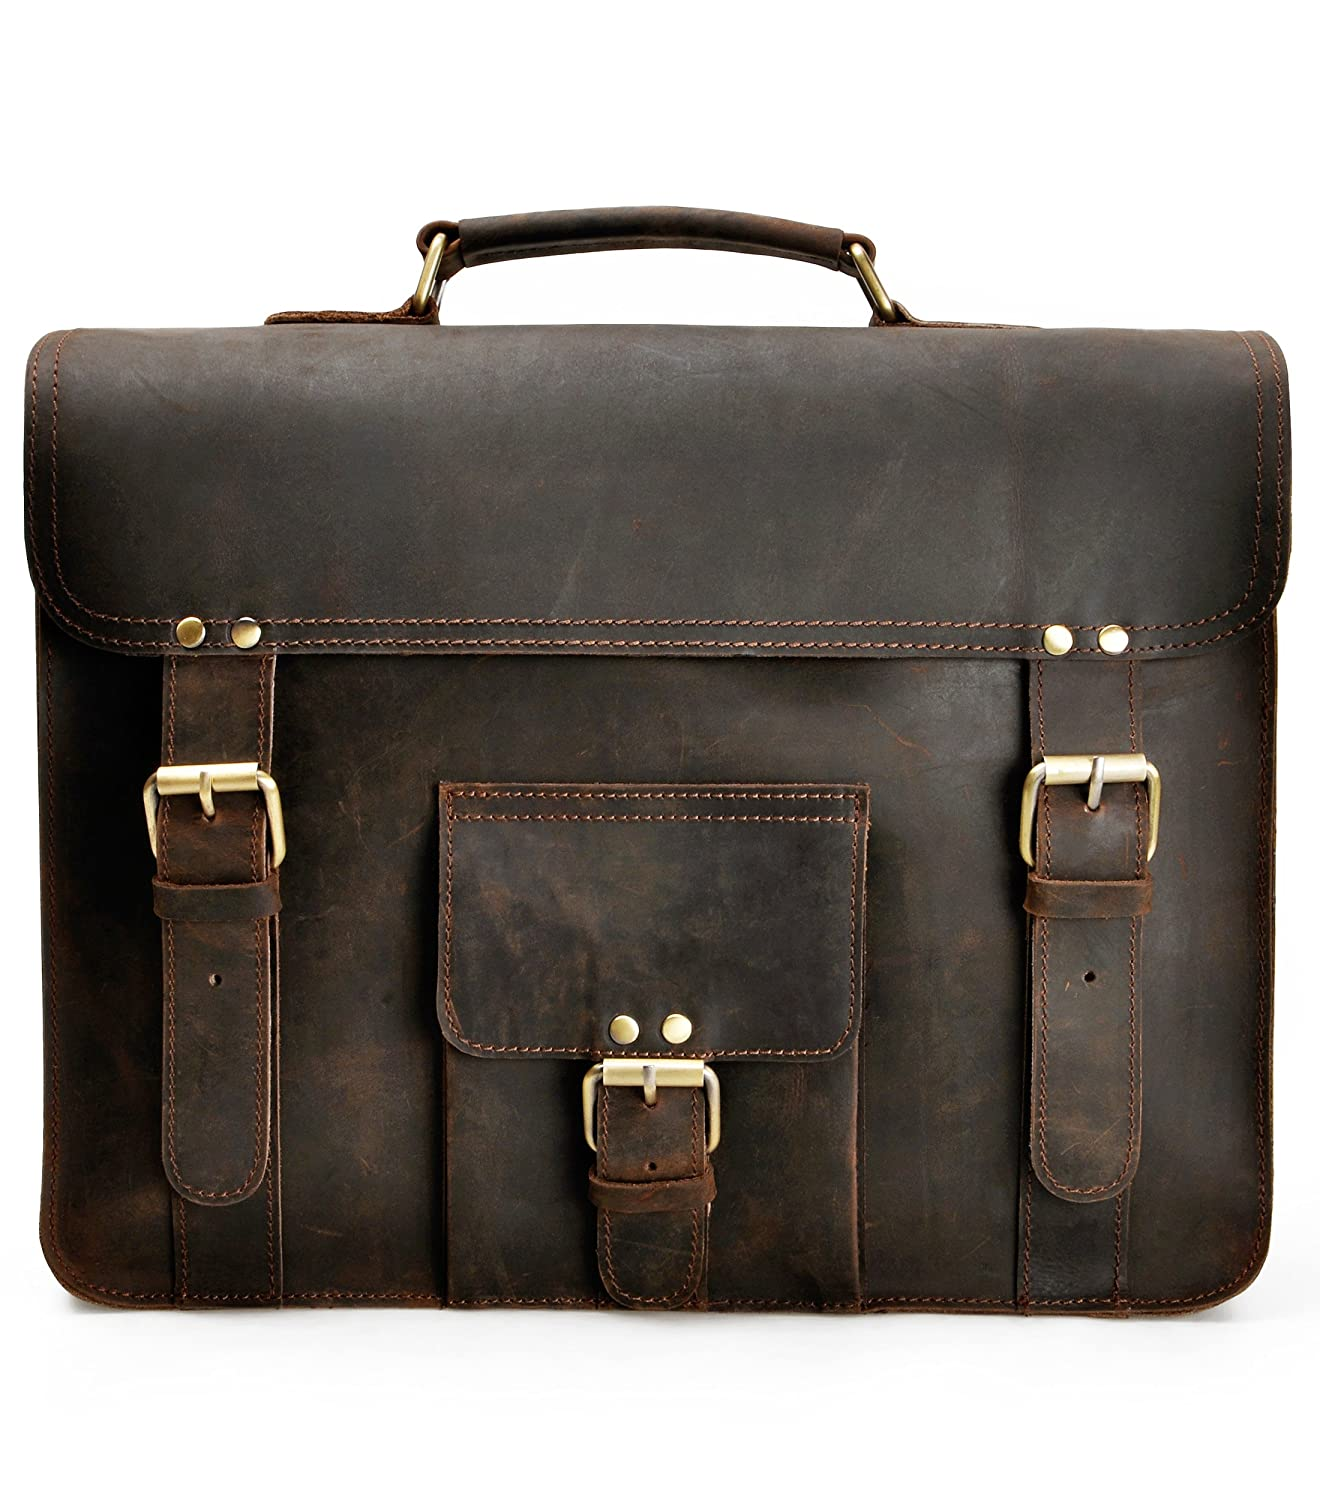 ZLYC Vintage Handmade Leather Business Briefcase